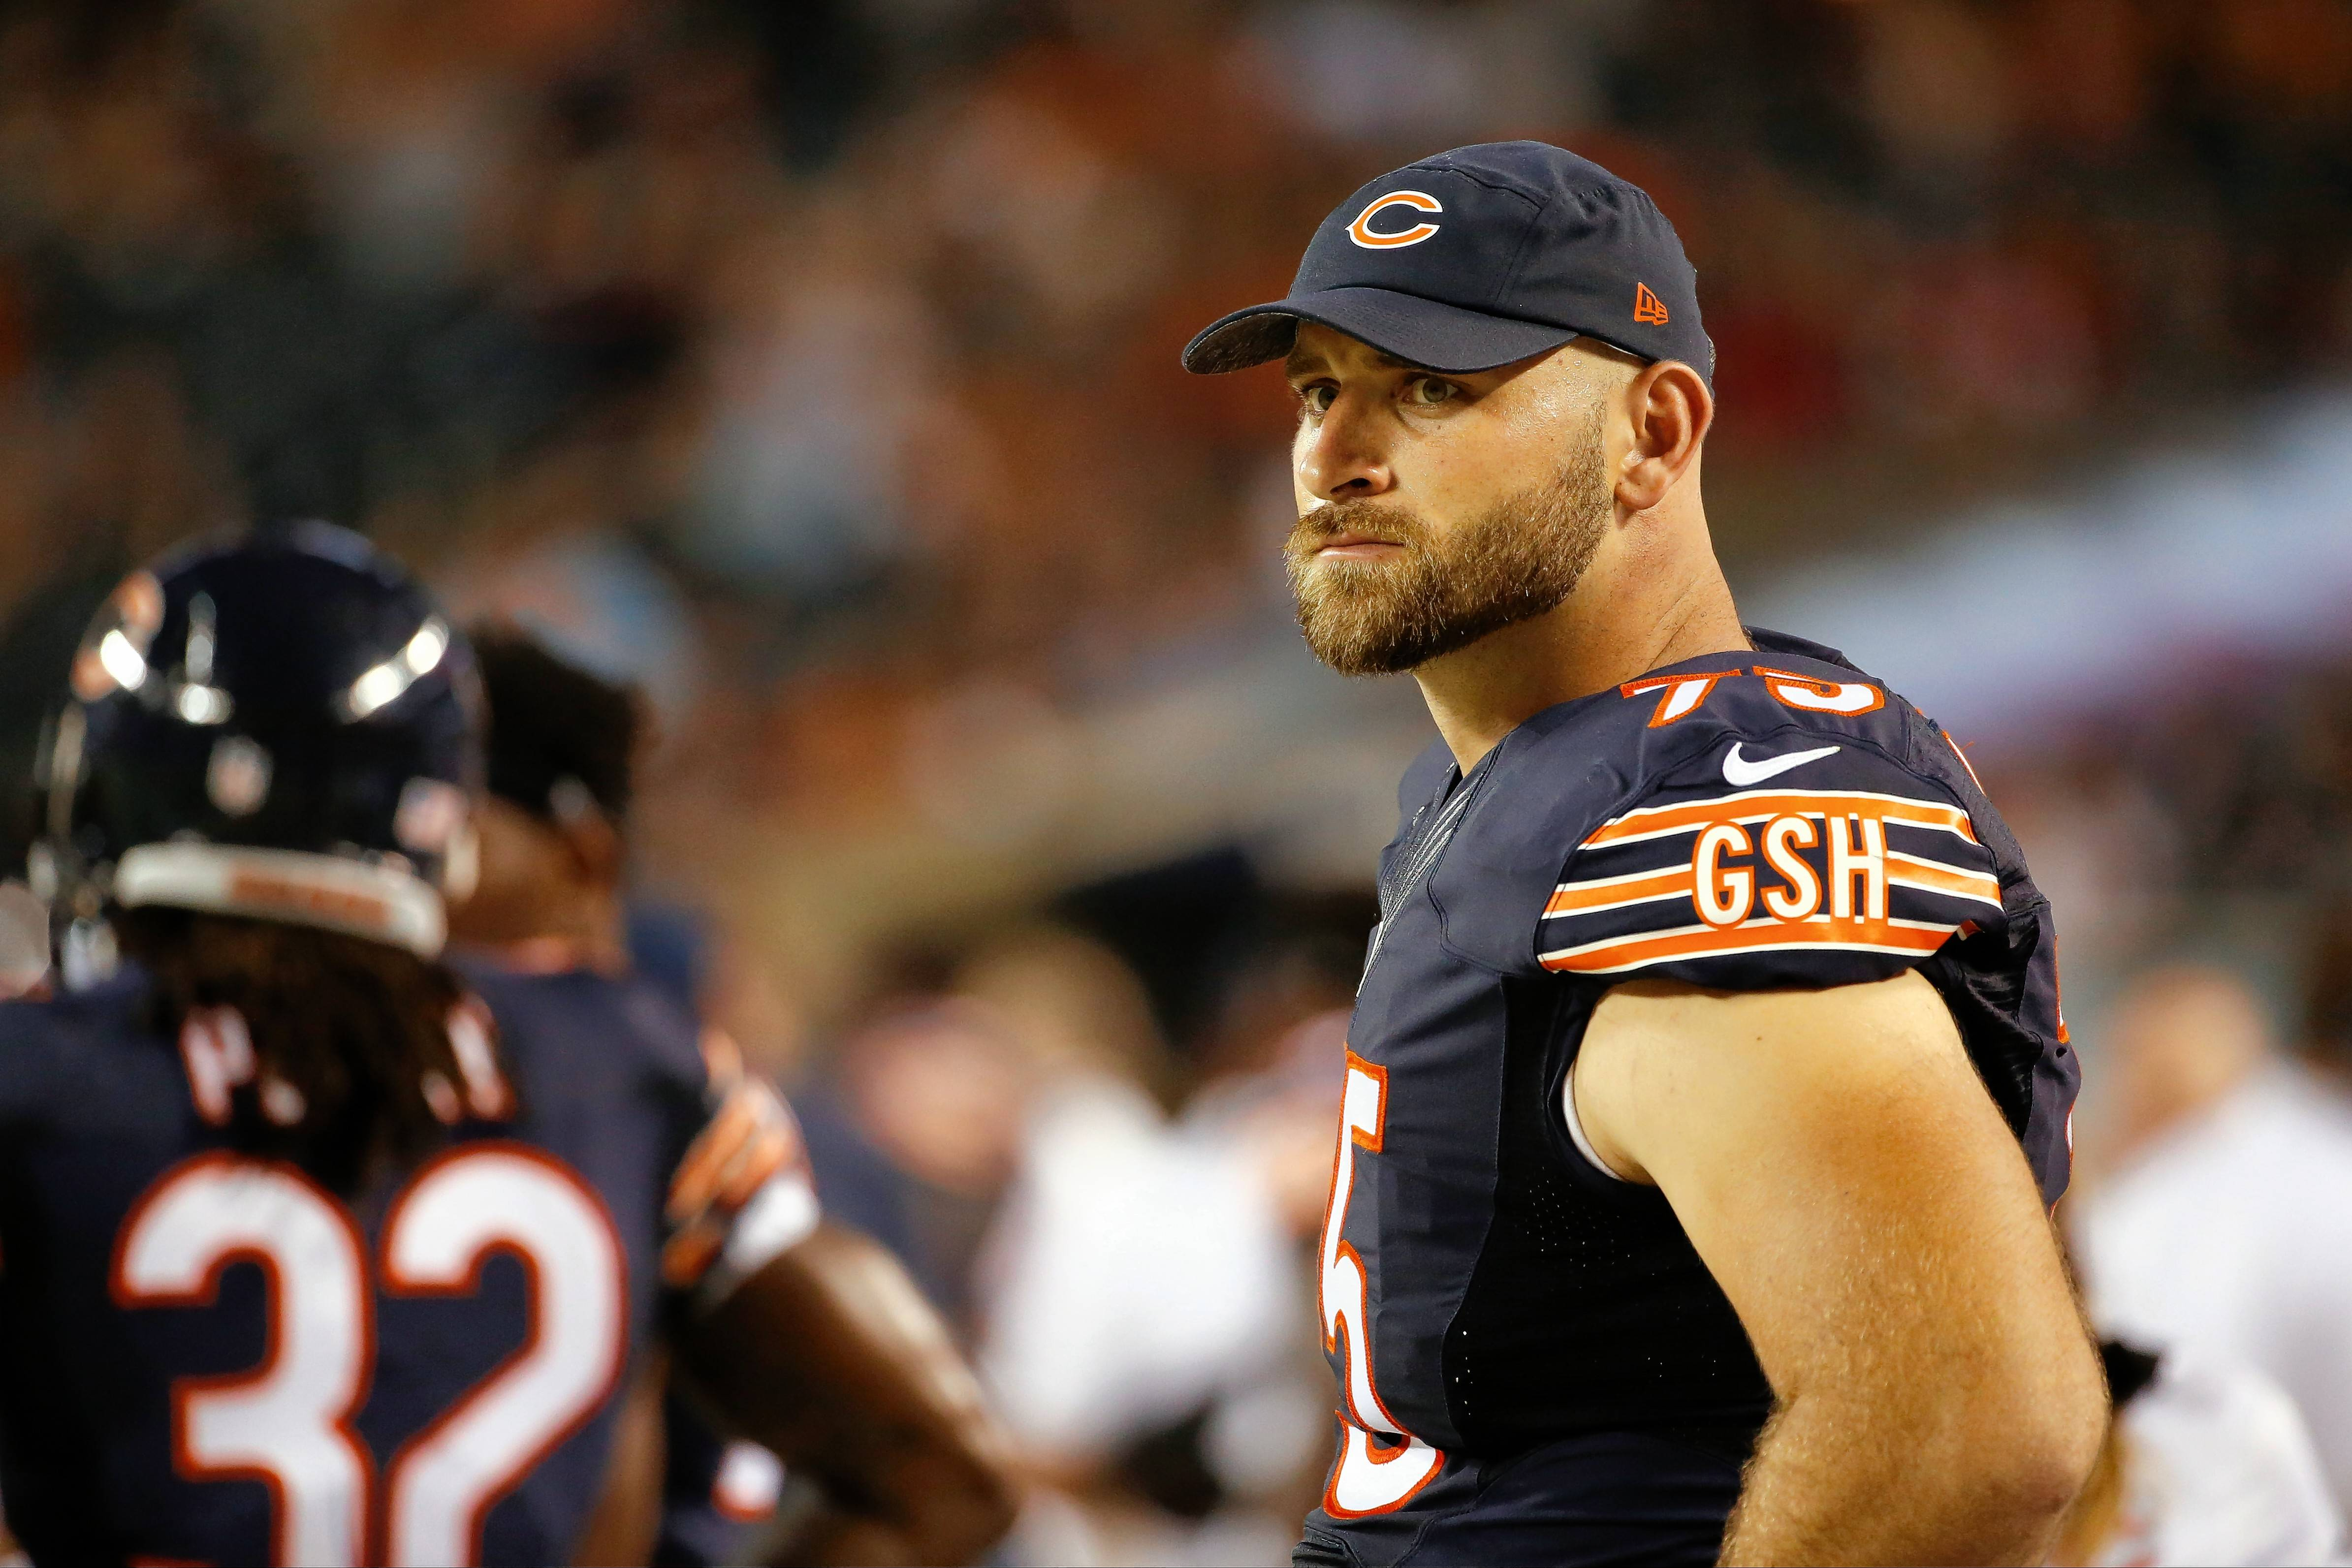 With several Chicago Bears starters, including offensive tackle Kyle Long above, sidelined with injures, some backups will get an opportunity to see how they fit in with the first team when the Bears take on the Kansas City Chiefs at noon on Saturday.